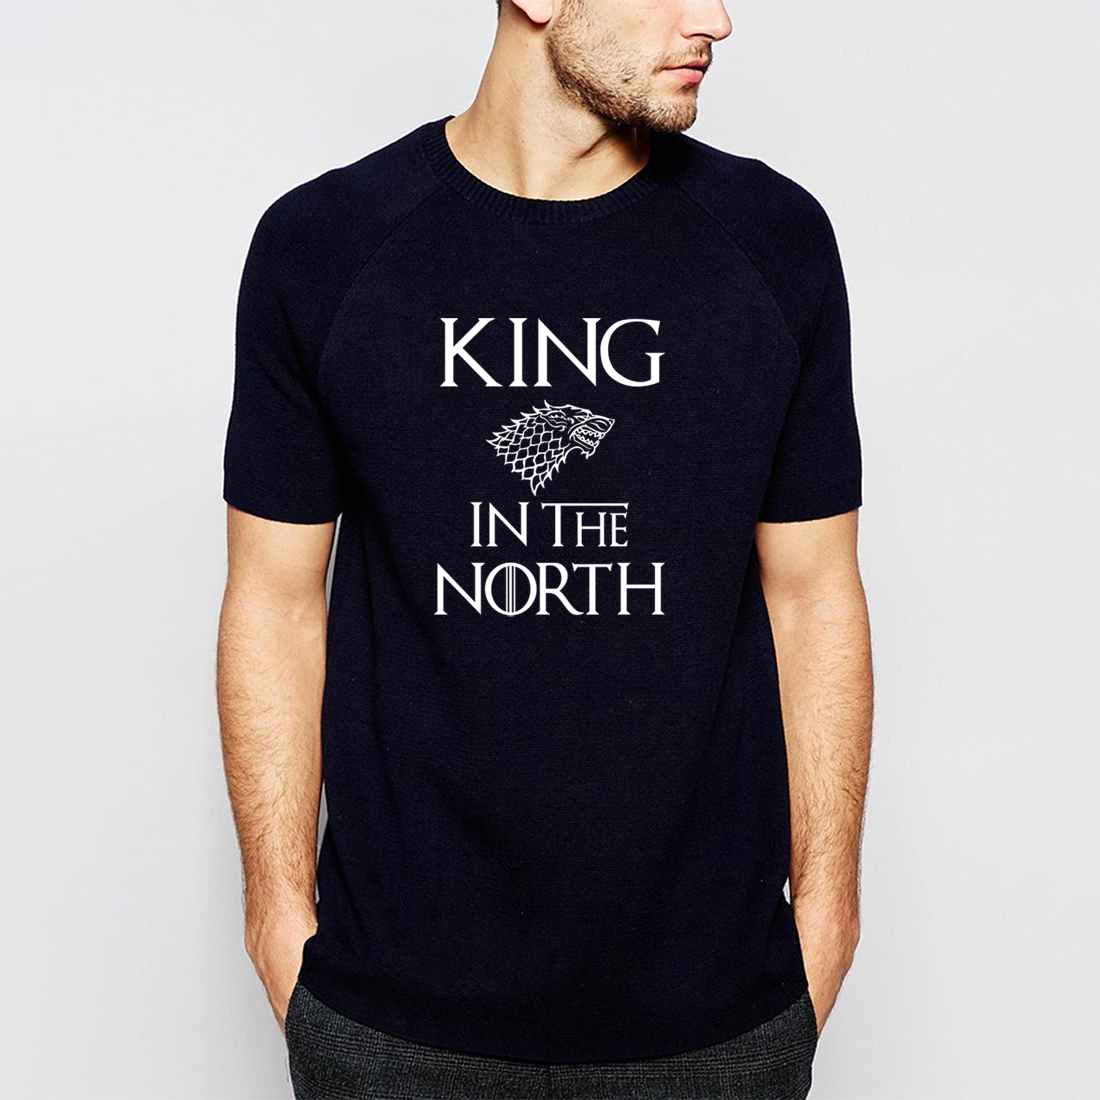 Game Of Thrones King In The North T Shirt Men 2019 Summer Funny T-shirts TV Show Short Sleeve Shirt Hip Hop Streetwear BZ0101